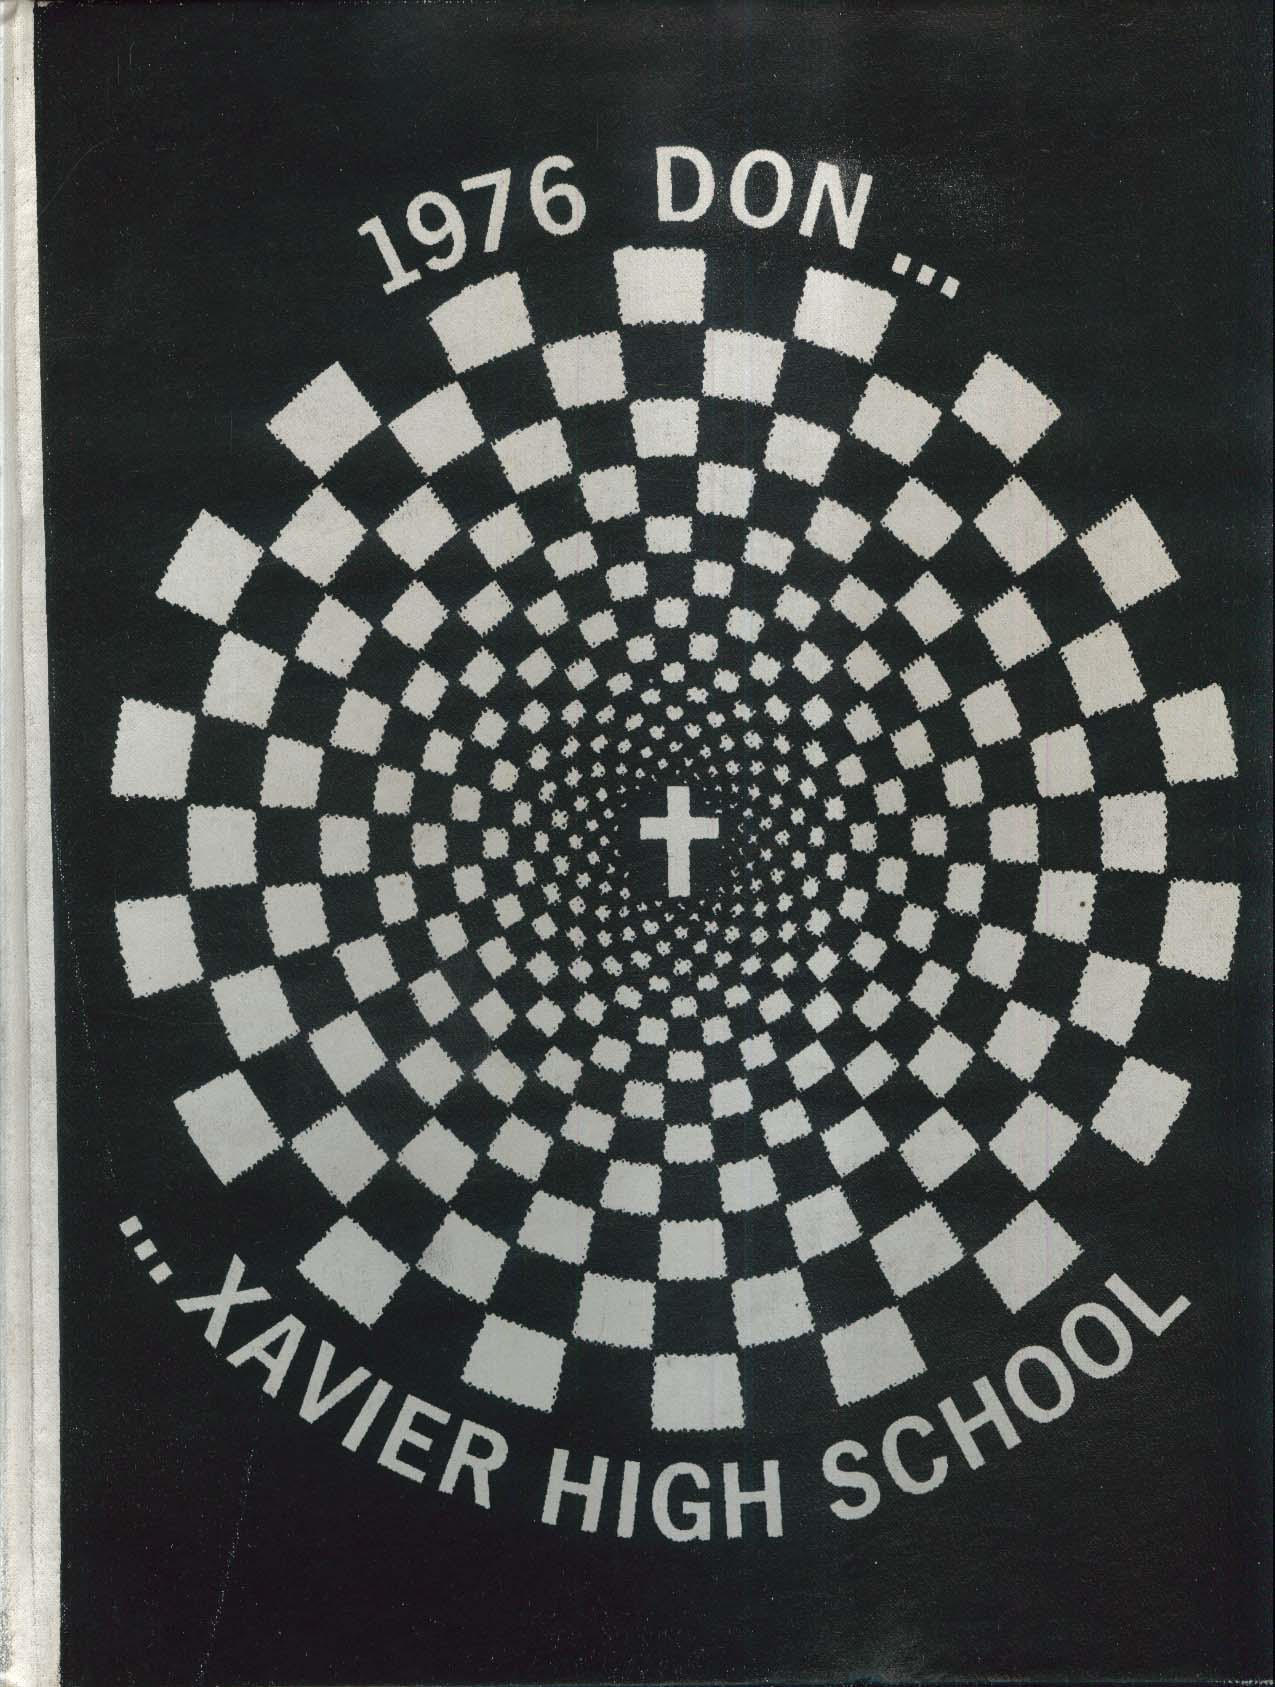 1976 Don Xavier High School Yearbook Middletown Connecticut CT